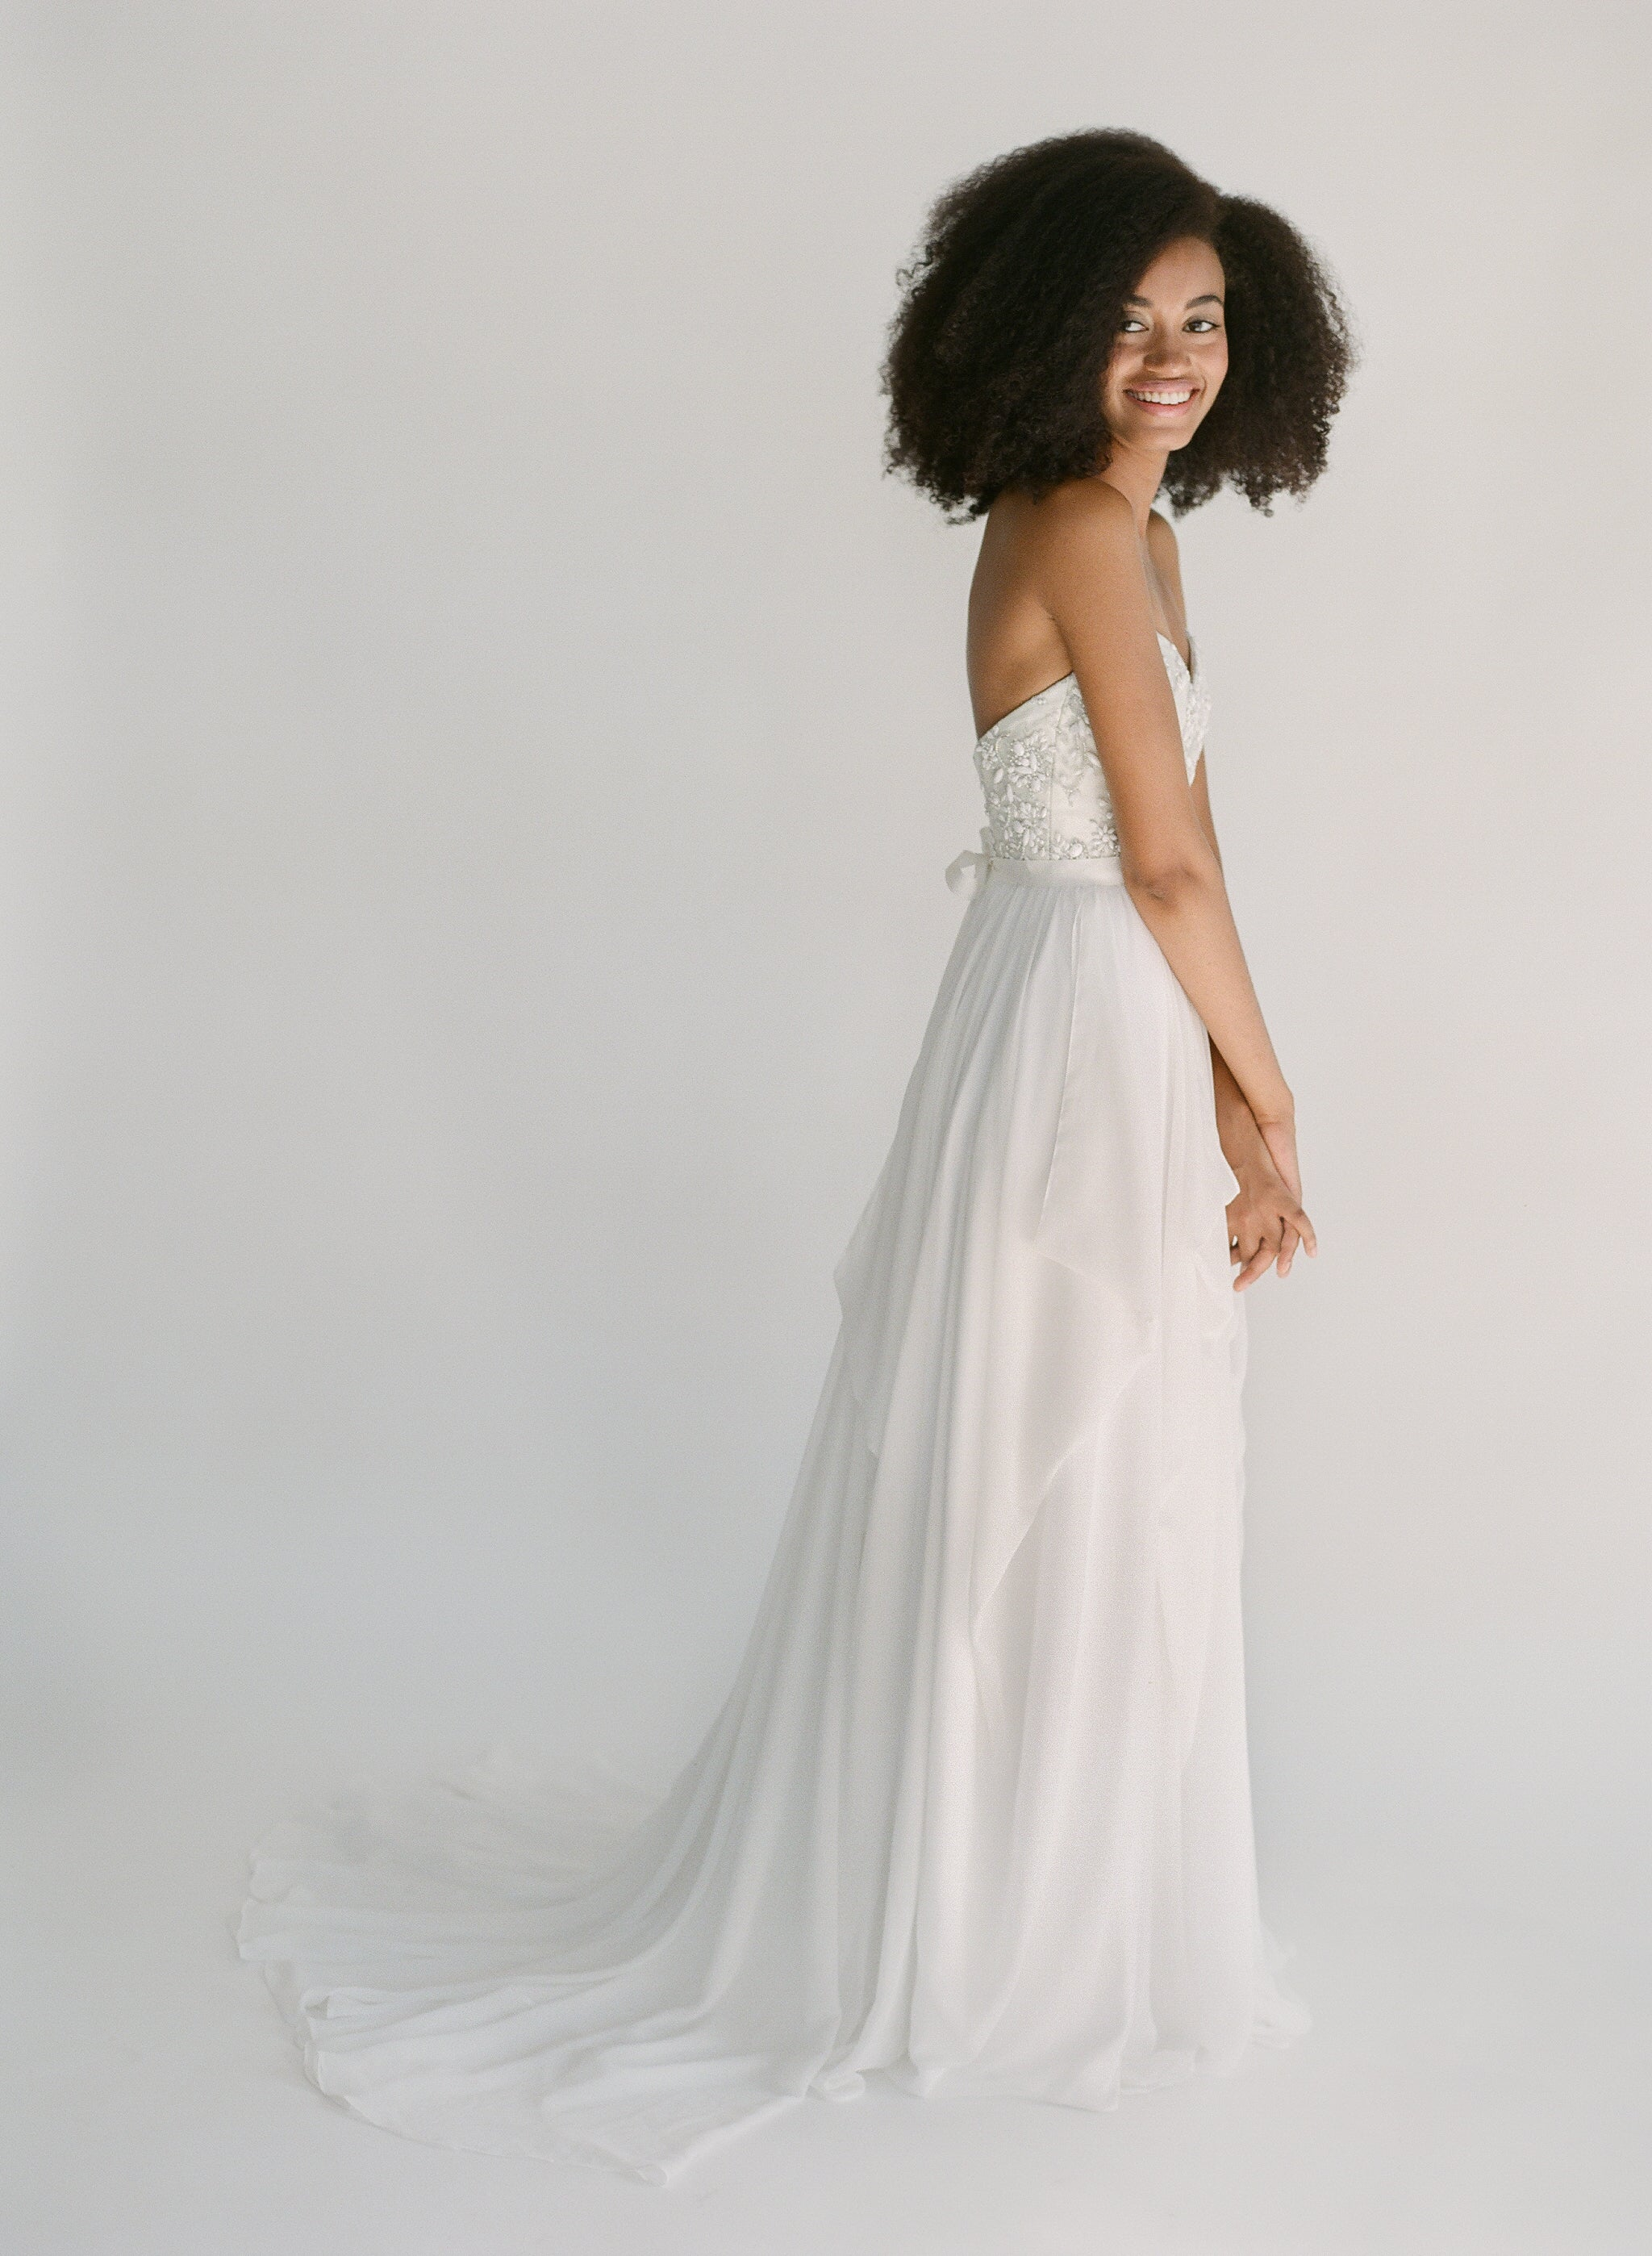 Strapless sweetheart wedding dress with silver beading, a corset back tie, and a lightweight chiffon skirt